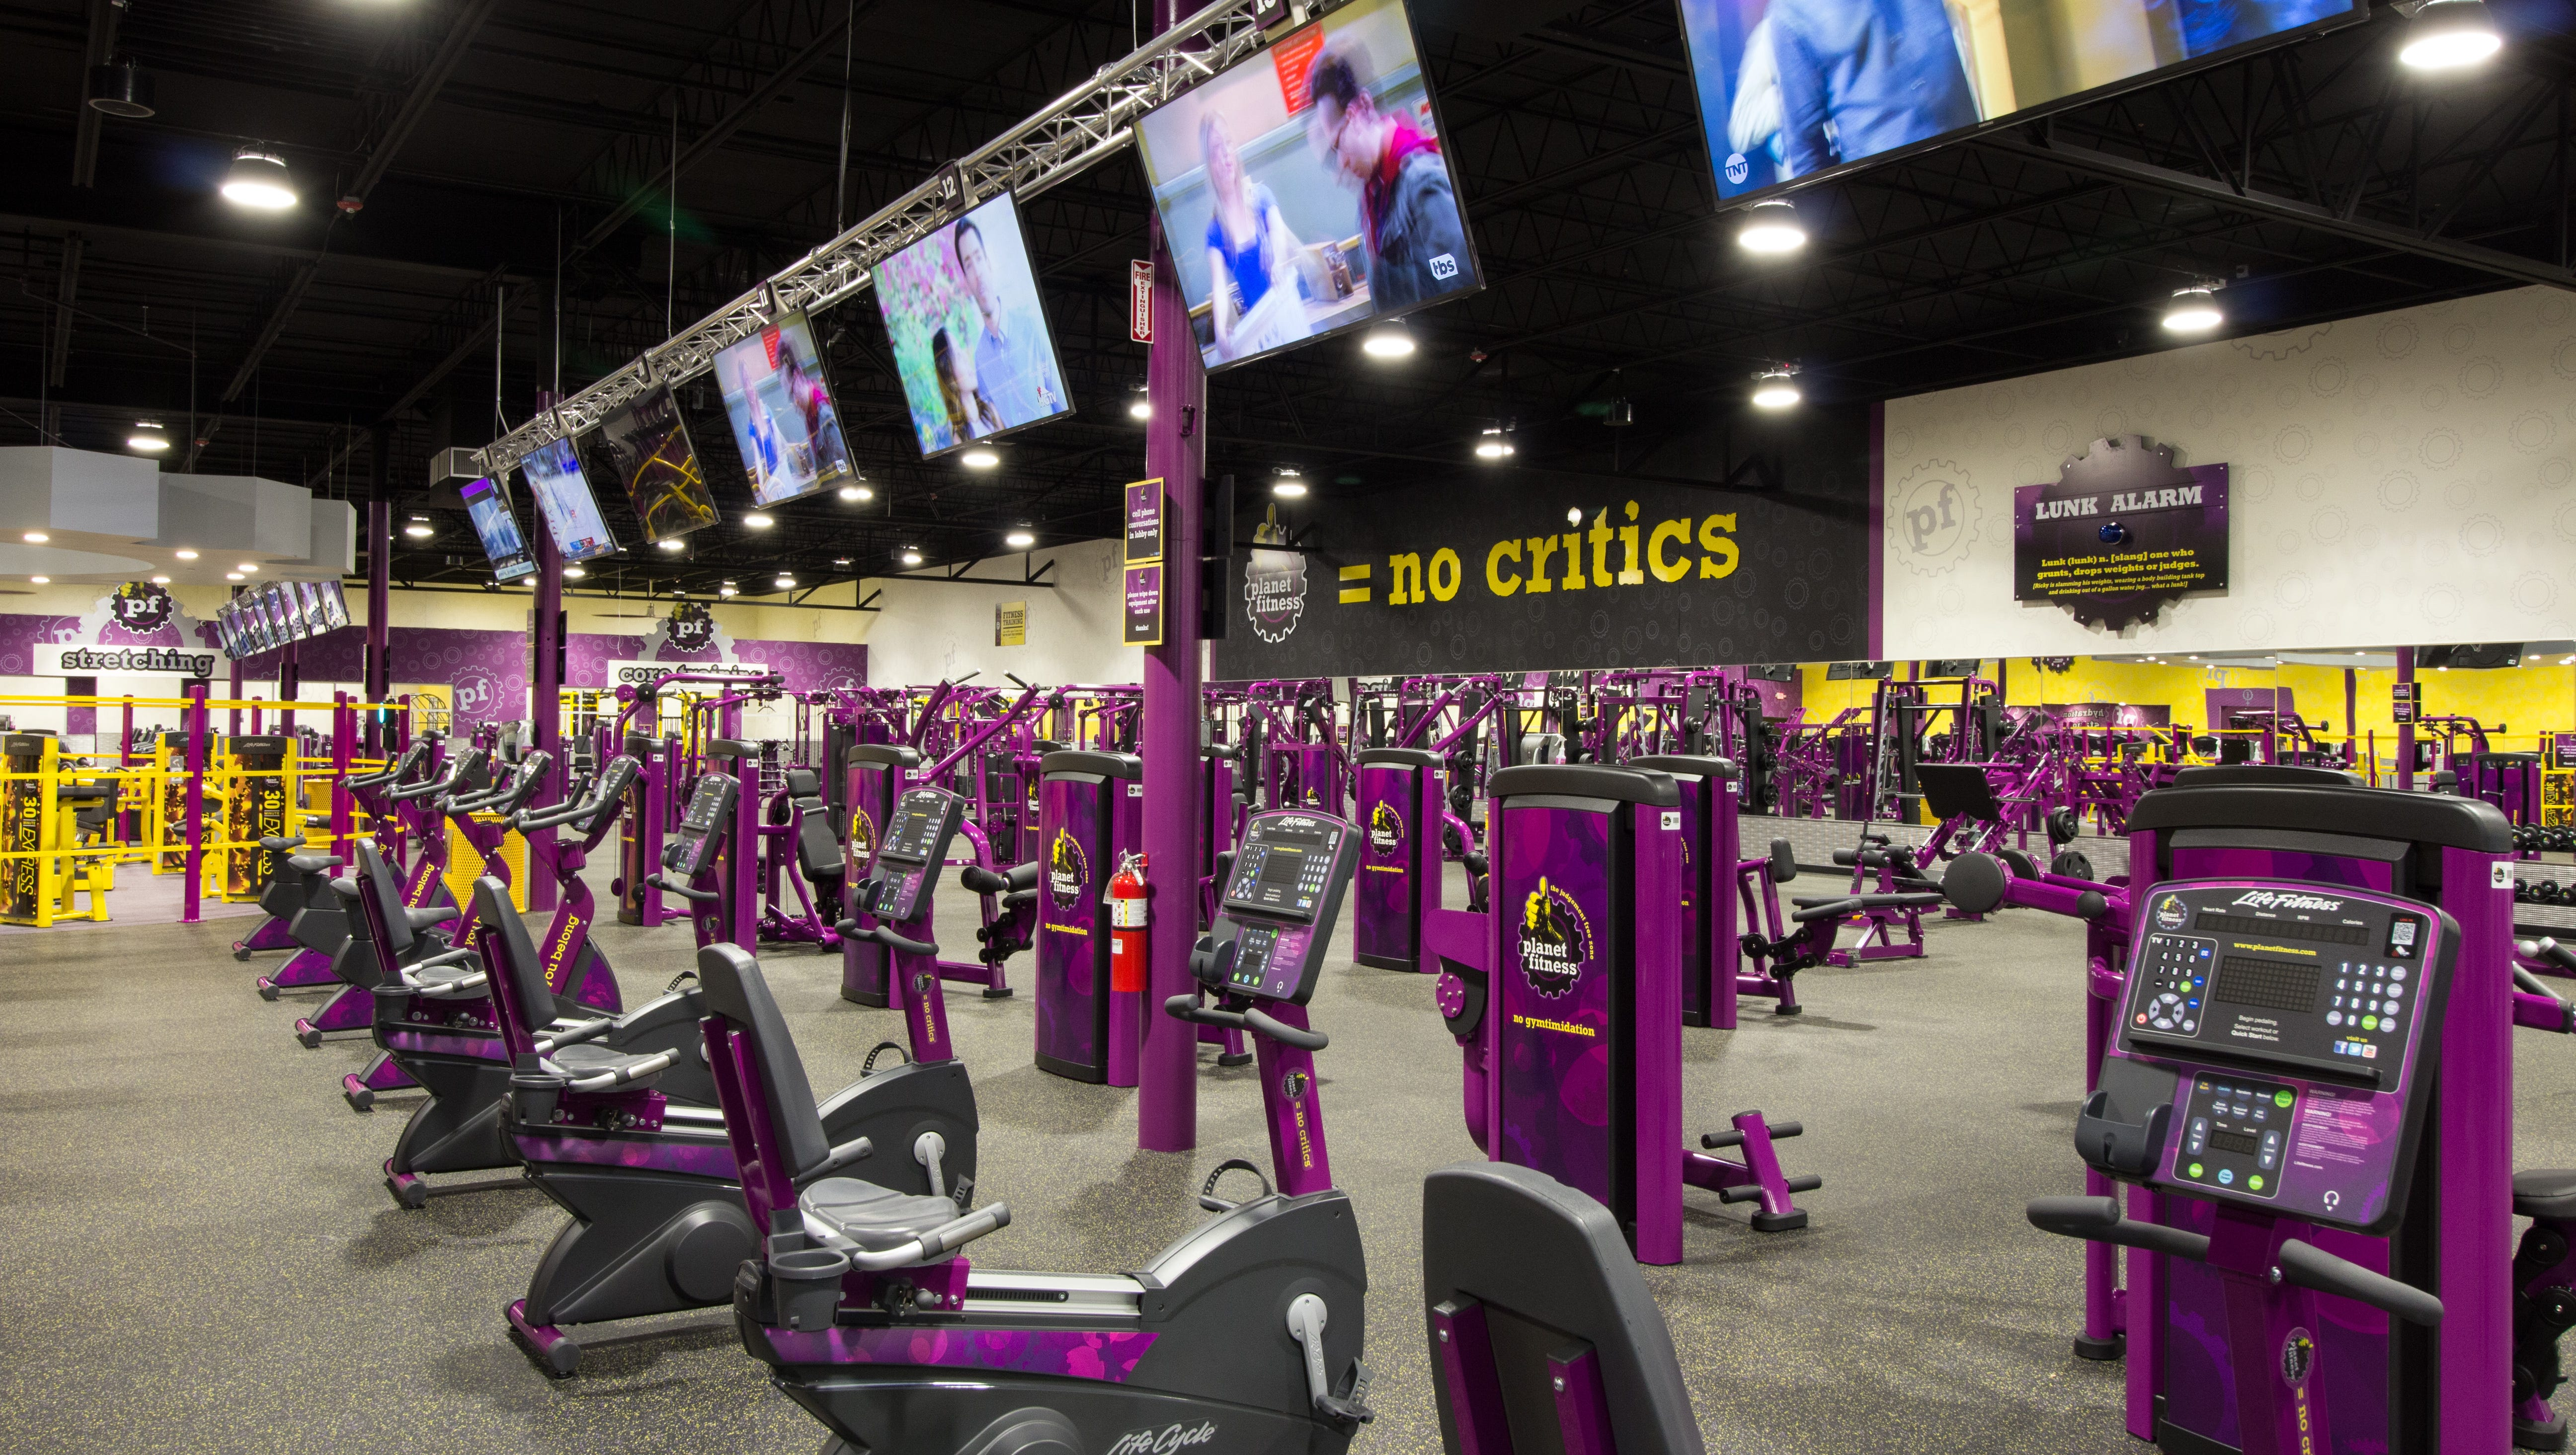 Planet fitness plans to open gym in downtown detroit